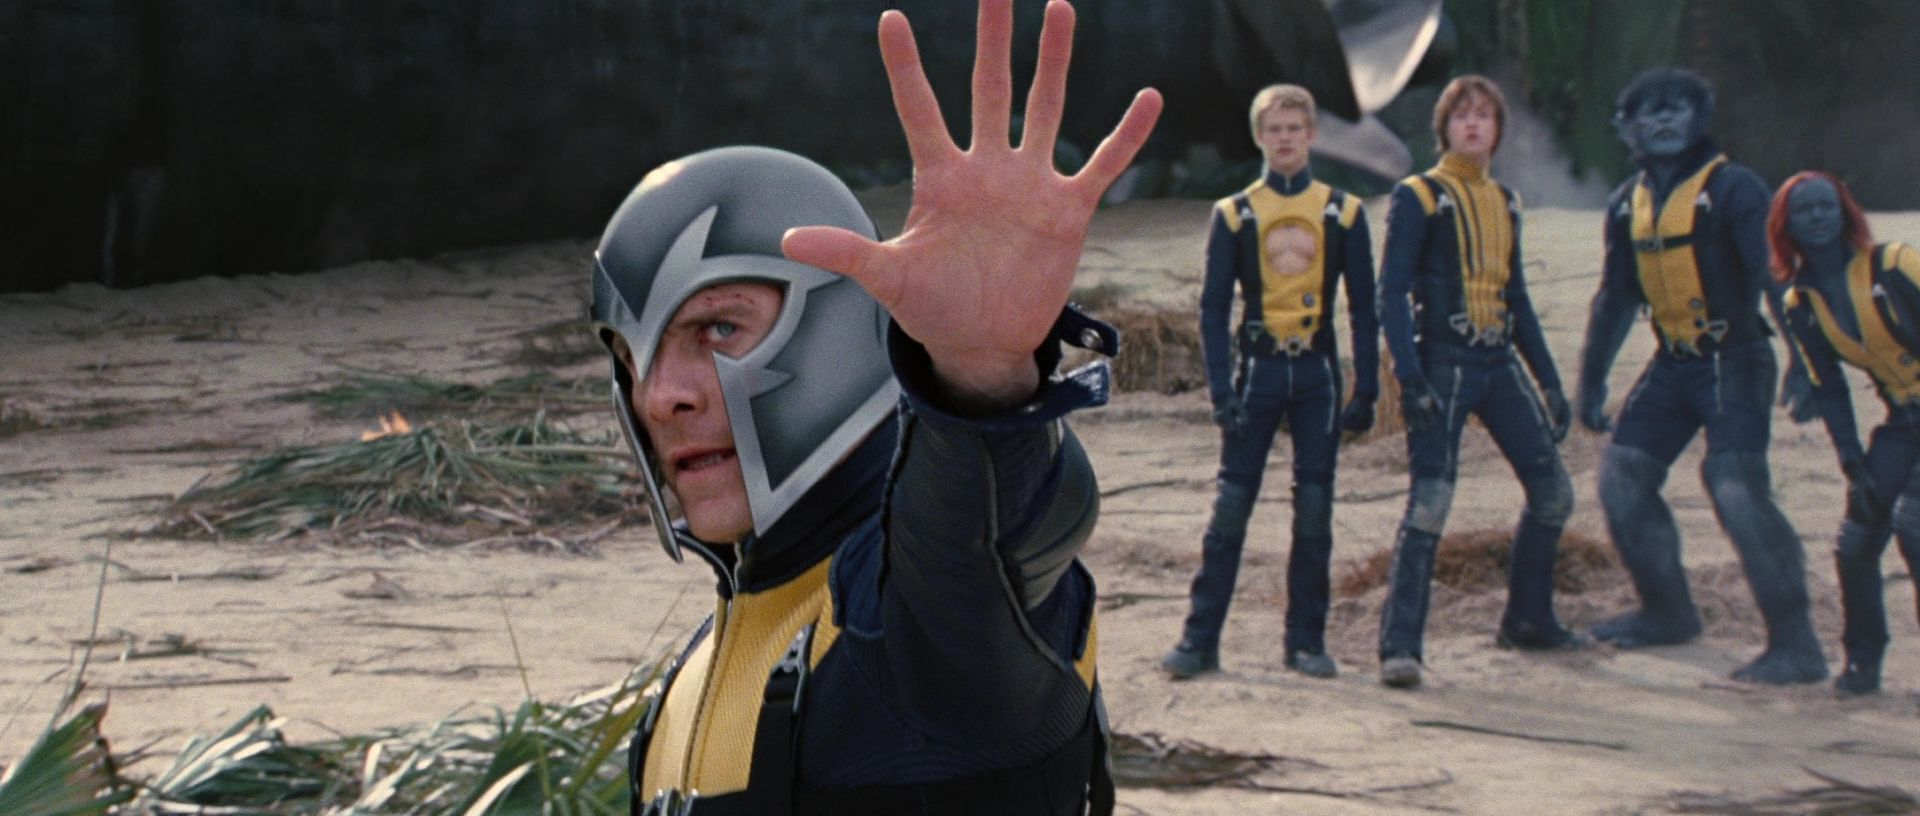 X Men First Class Theme Song Movie Theme Songs Tv Soundtracks